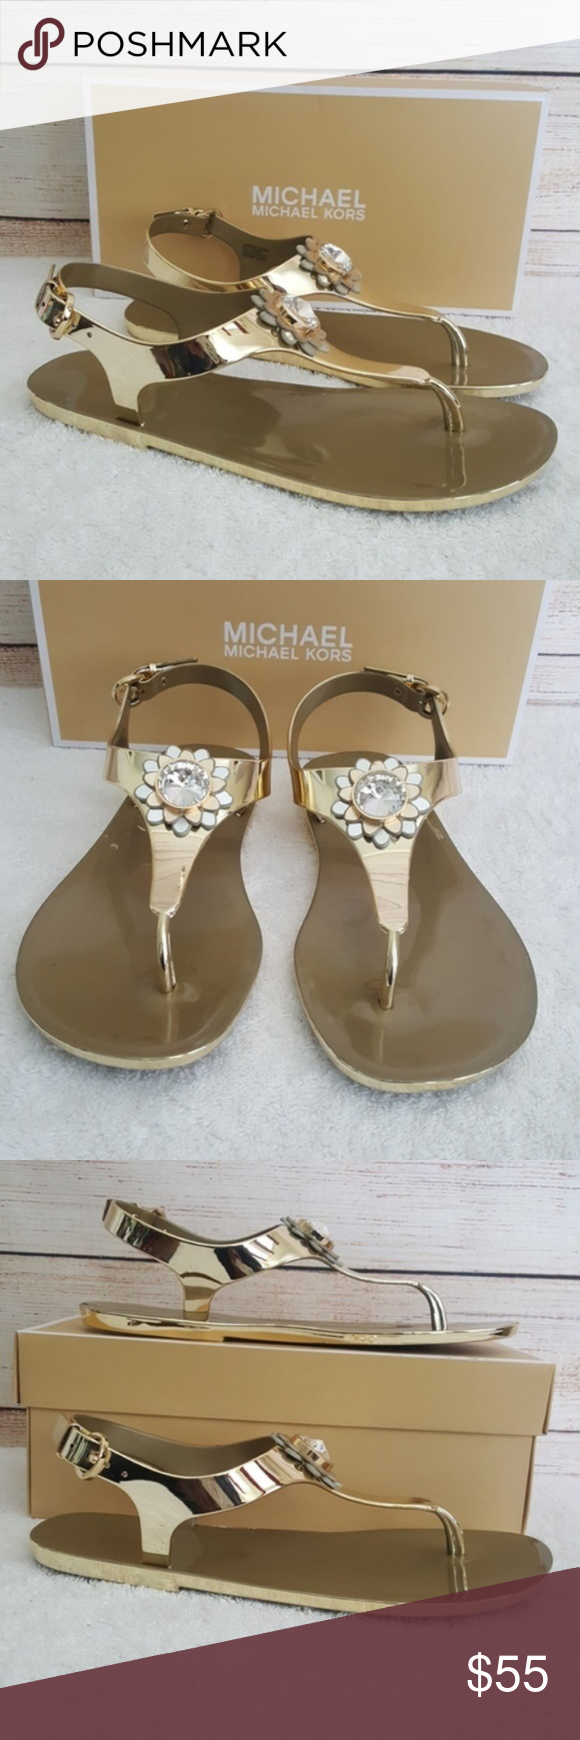 New Michael Kors Miley Jelly Sandals